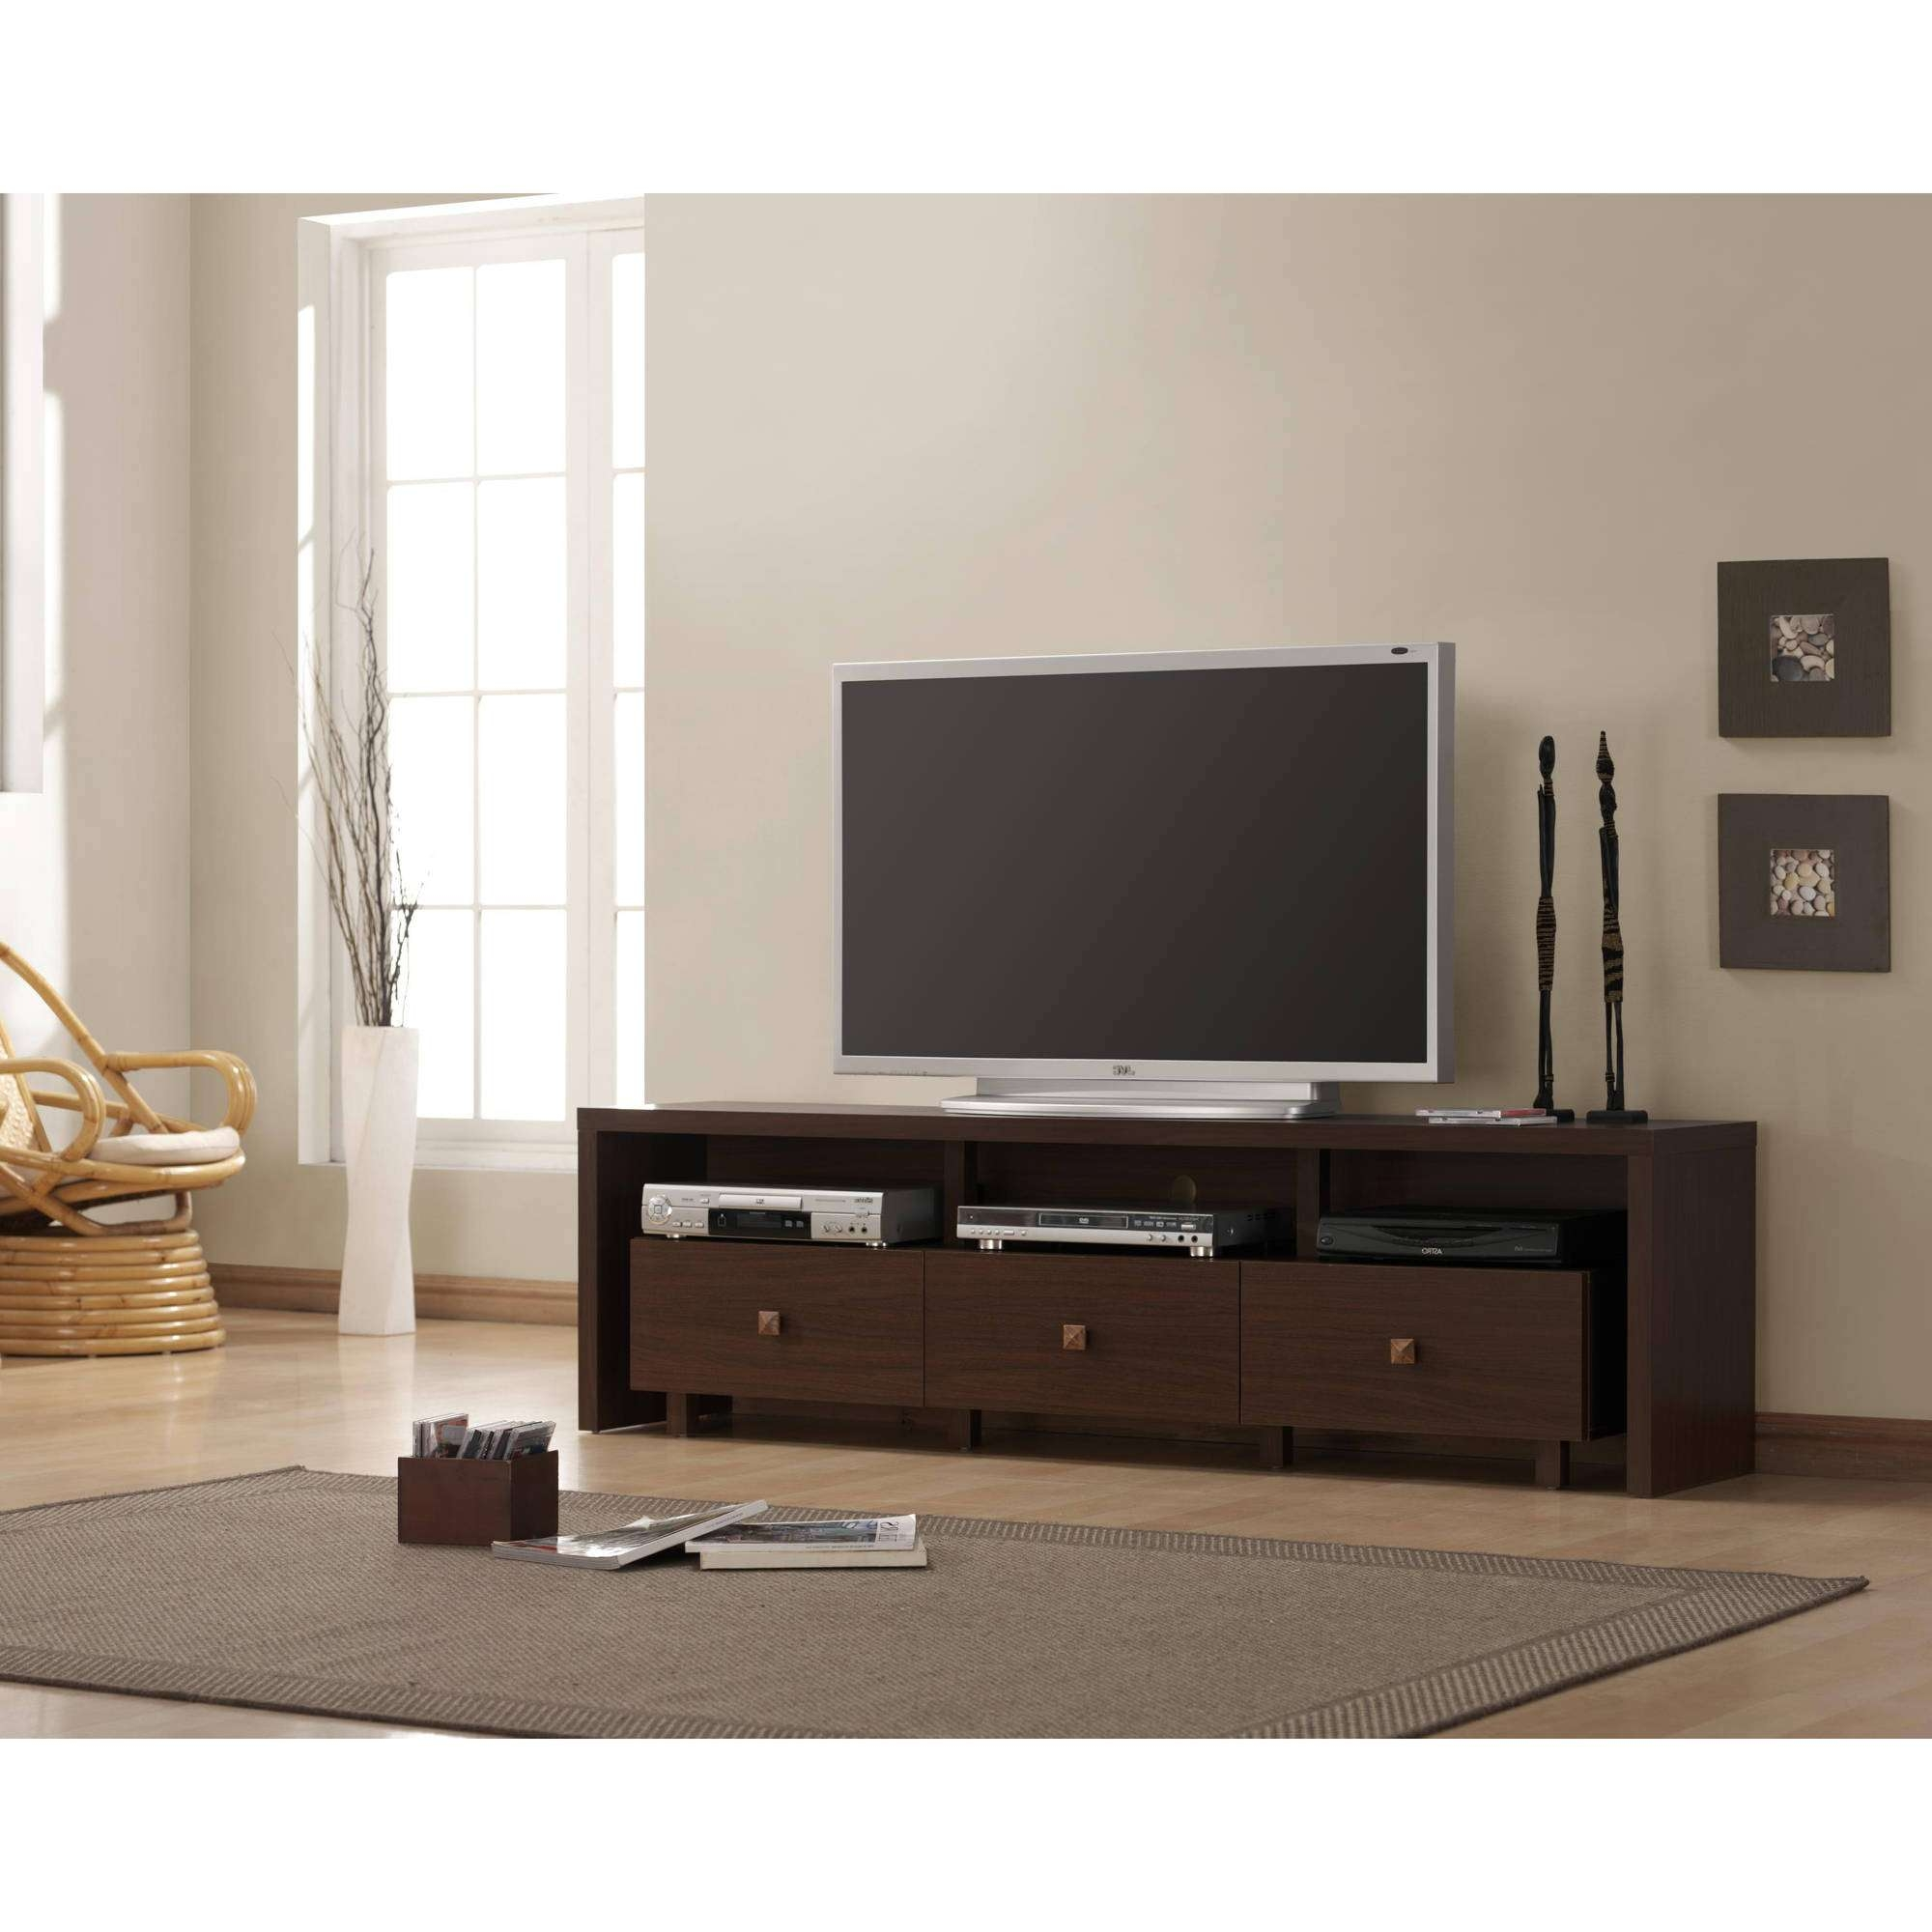 Howling Porter Tv Stand Porter Tv Stand Home Entertainment From With Regard To Modern Tv Stands For 60 Inch Tvs (View 8 of 15)